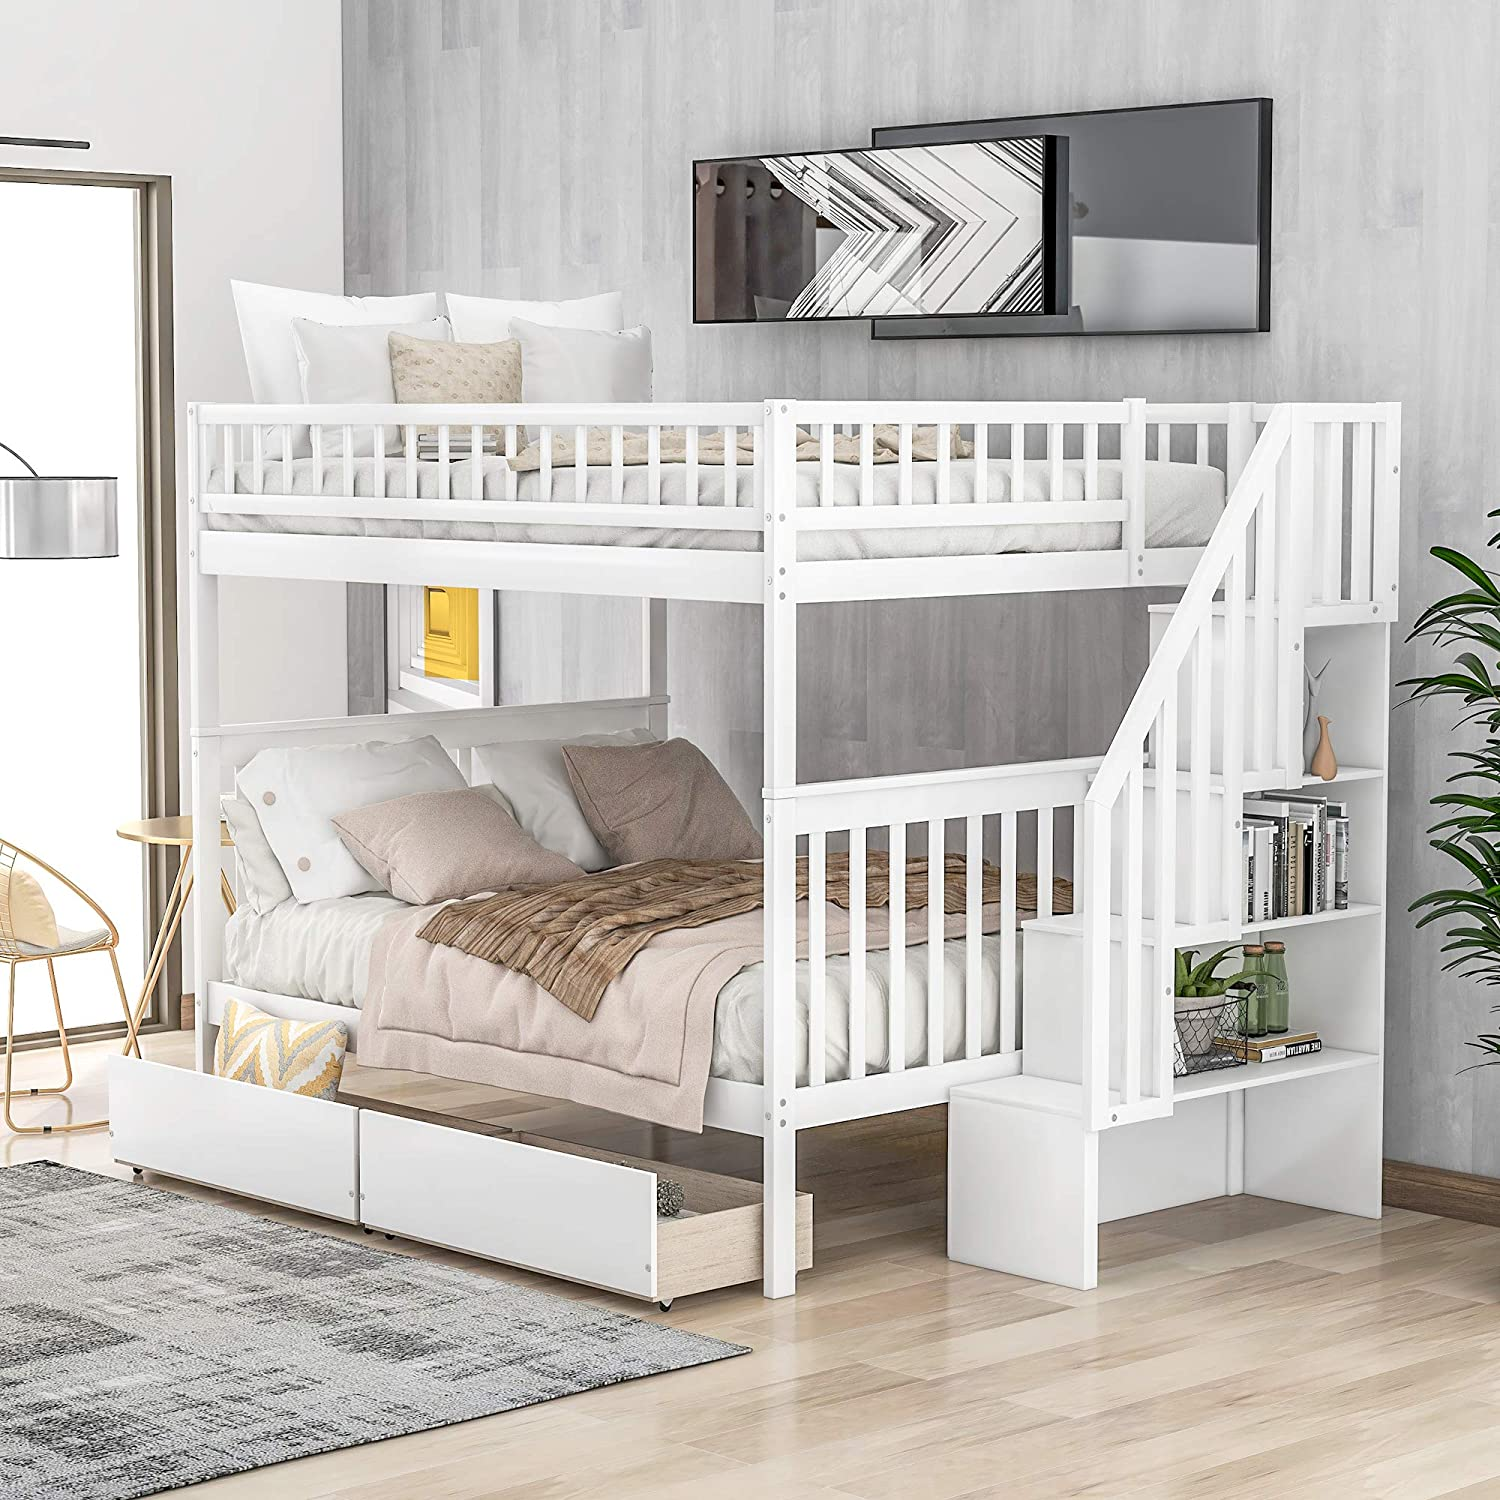 Amazon Com Full Over Full Bunk Bed With Storage Drawers Mission Style Wood Storage Full Bunk Bed Frame For Kids And Teens White Kitchen Dining